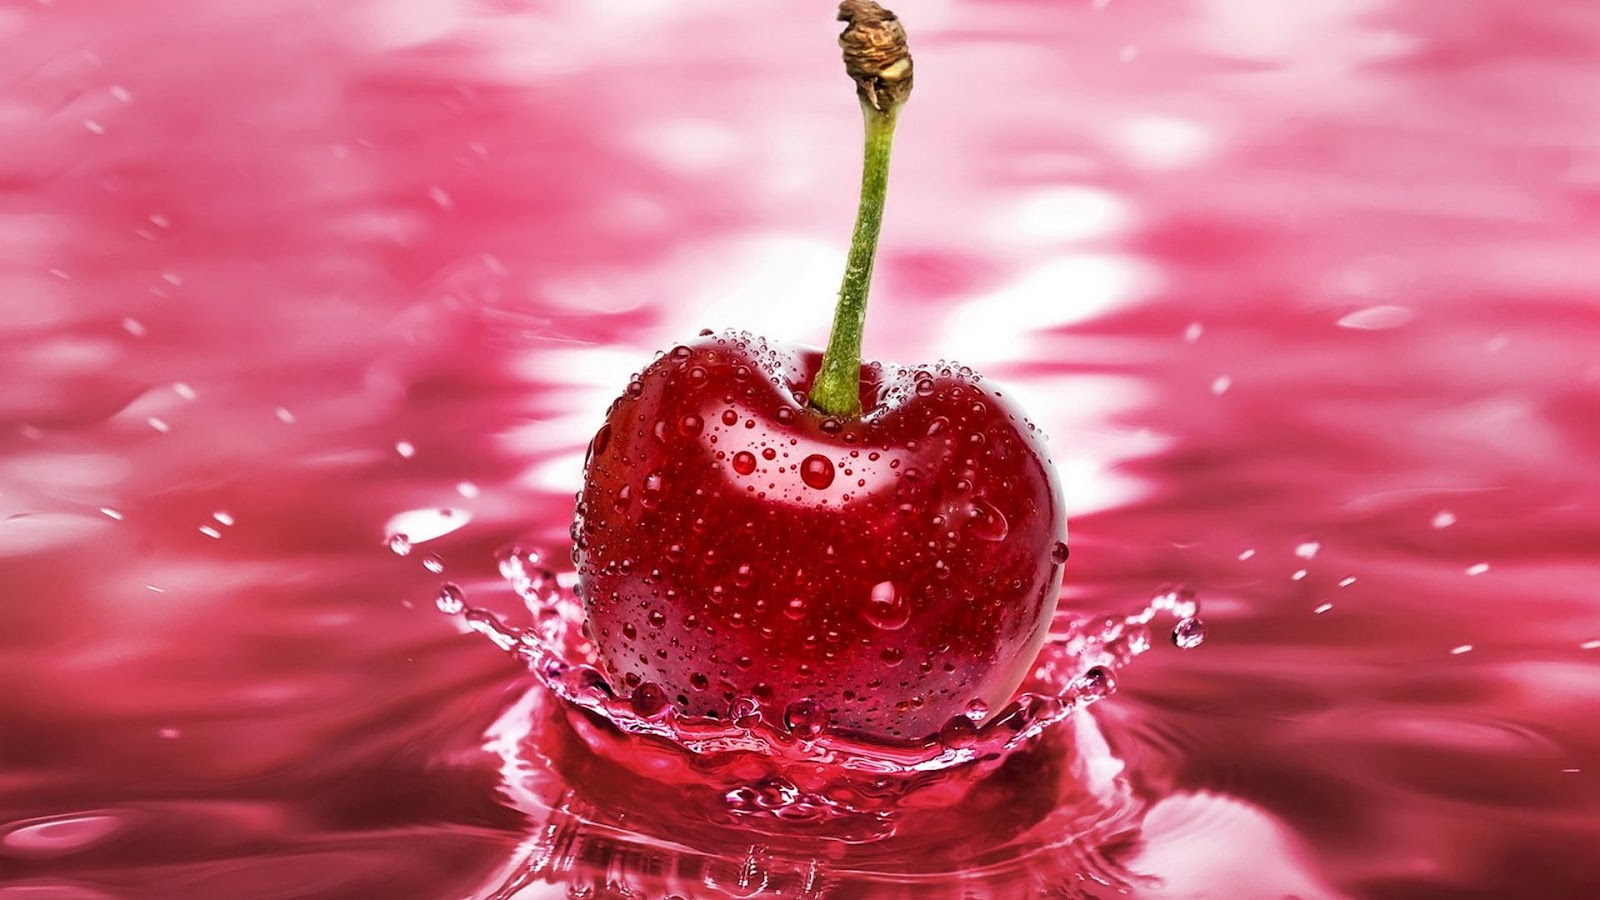 http://1.bp.blogspot.com/-eGC5dUOGSTY/UBzeo-951jI/AAAAAAAACRk/MZPCEGMIrWQ/s1600/food-cherry-splash-water-other-1080x1920.jpg